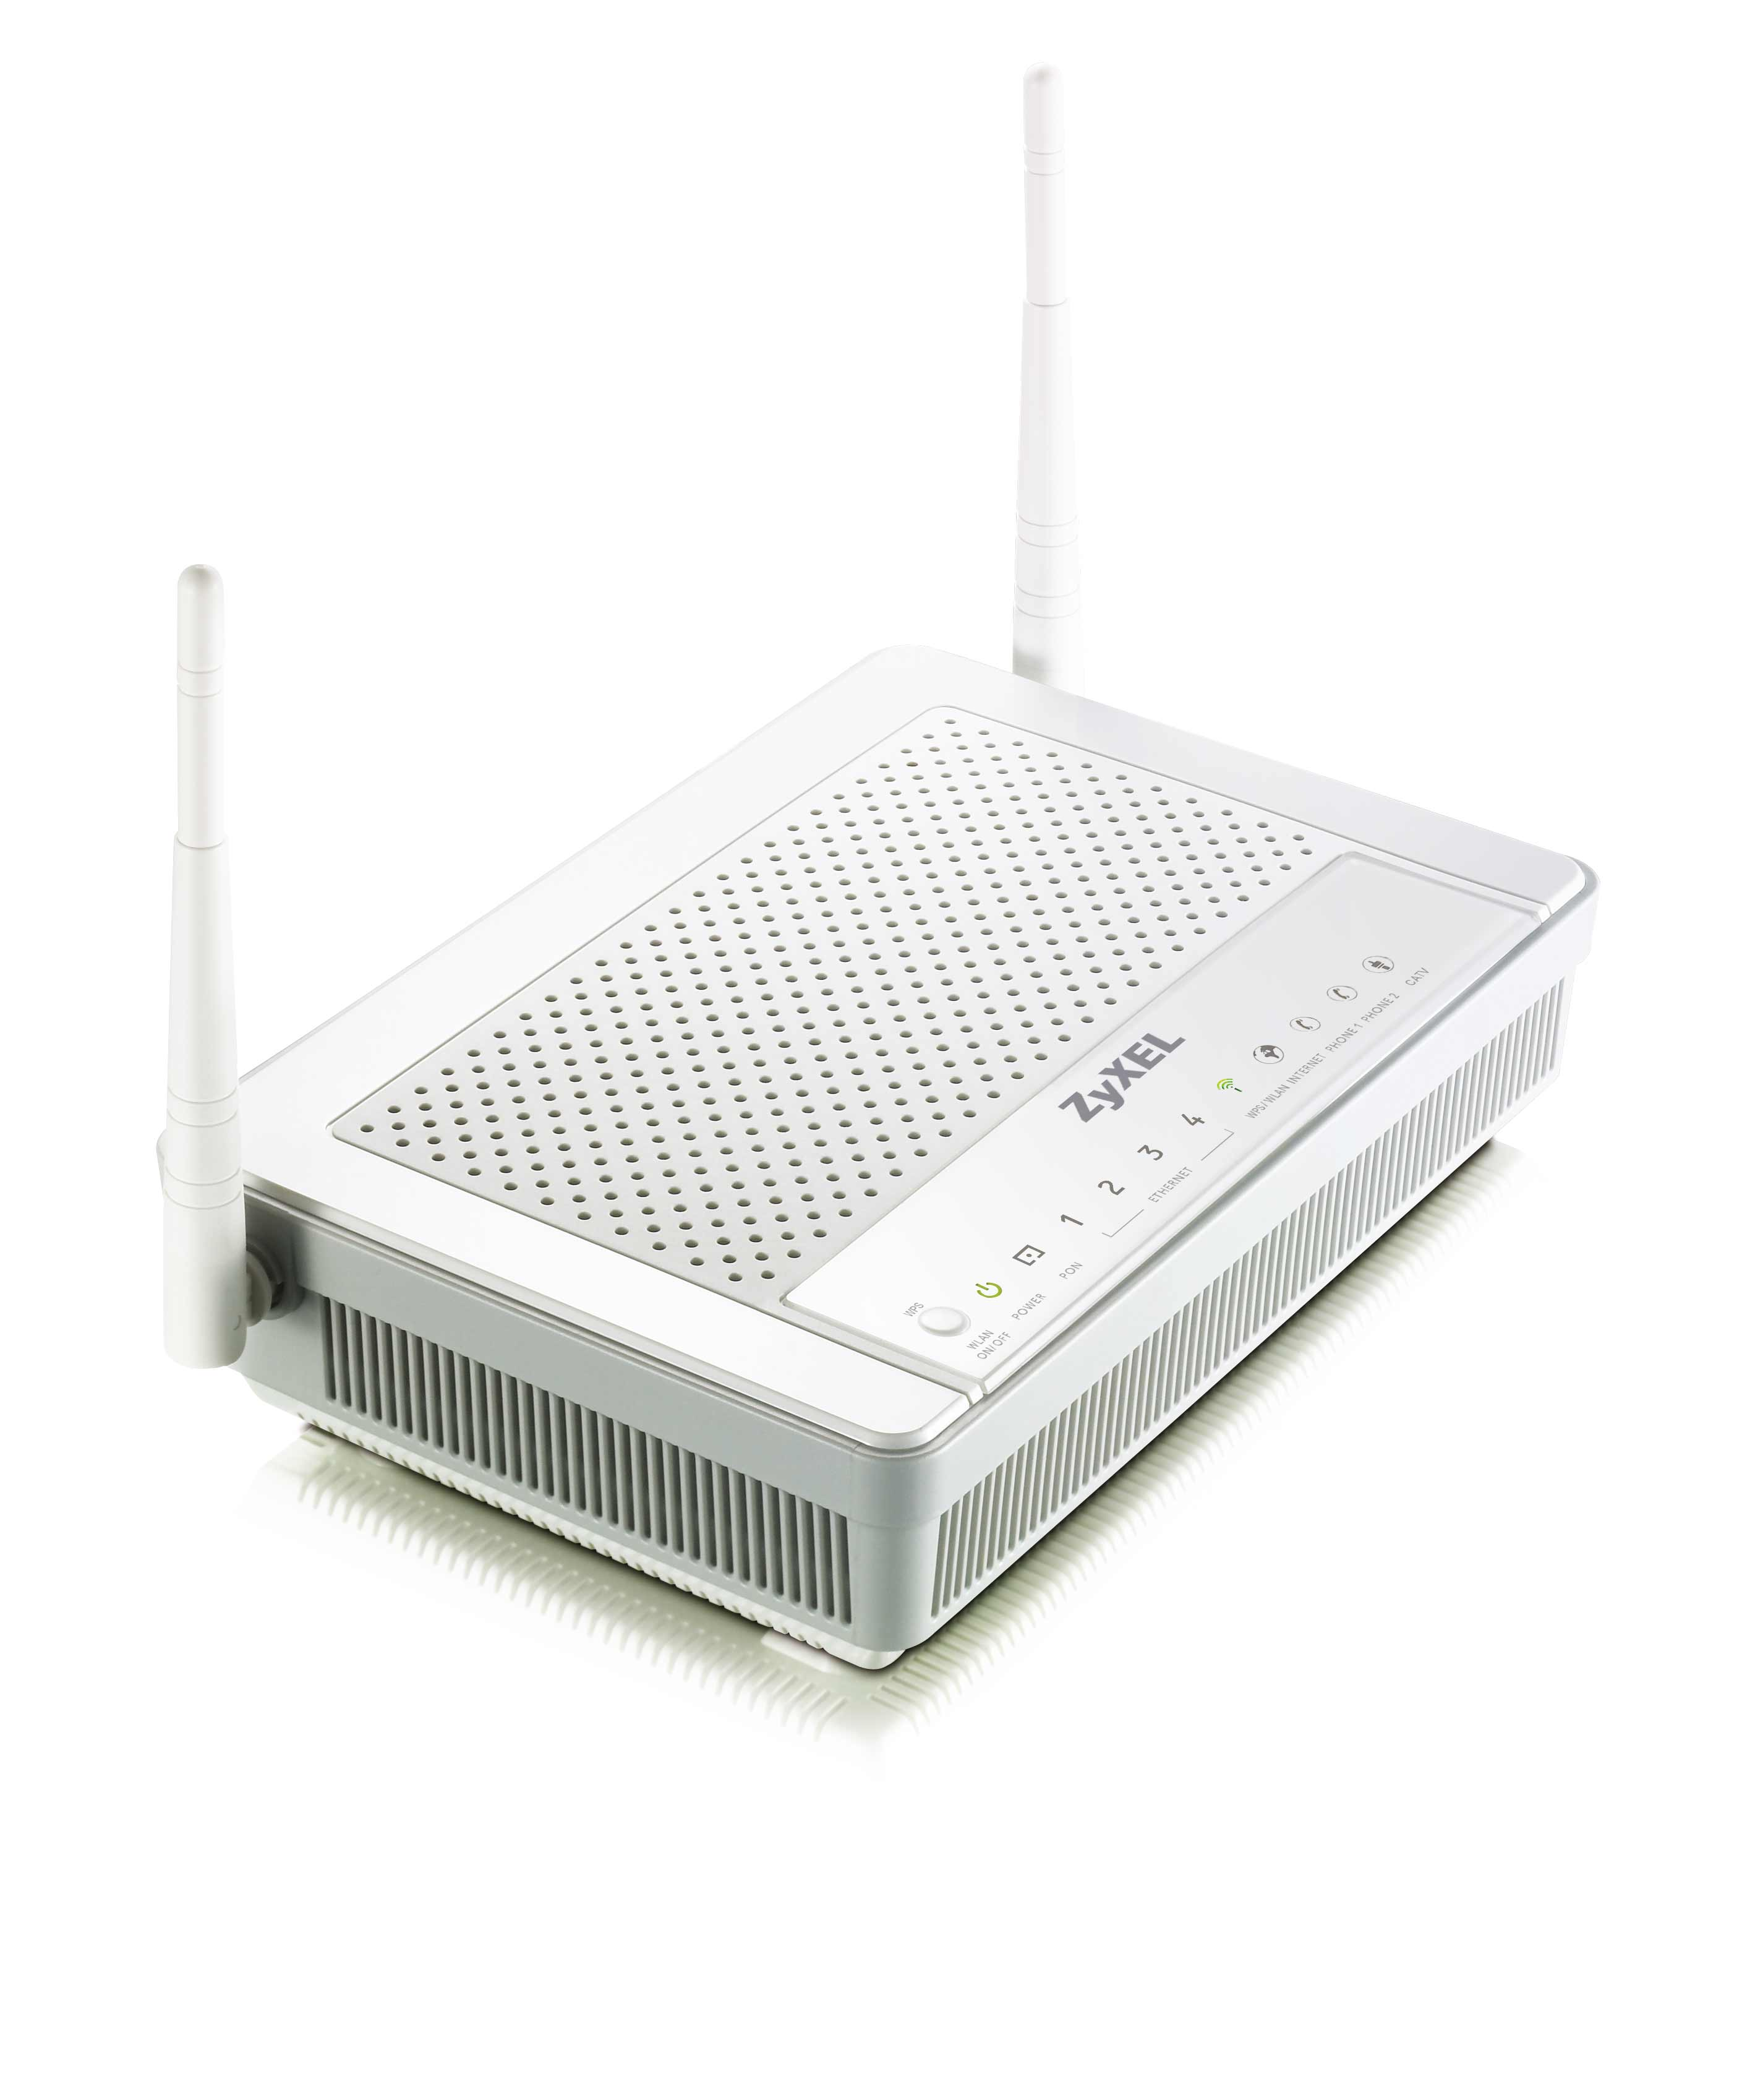 GPON Wireless 11n IAD / Zyxel Communications Corporation